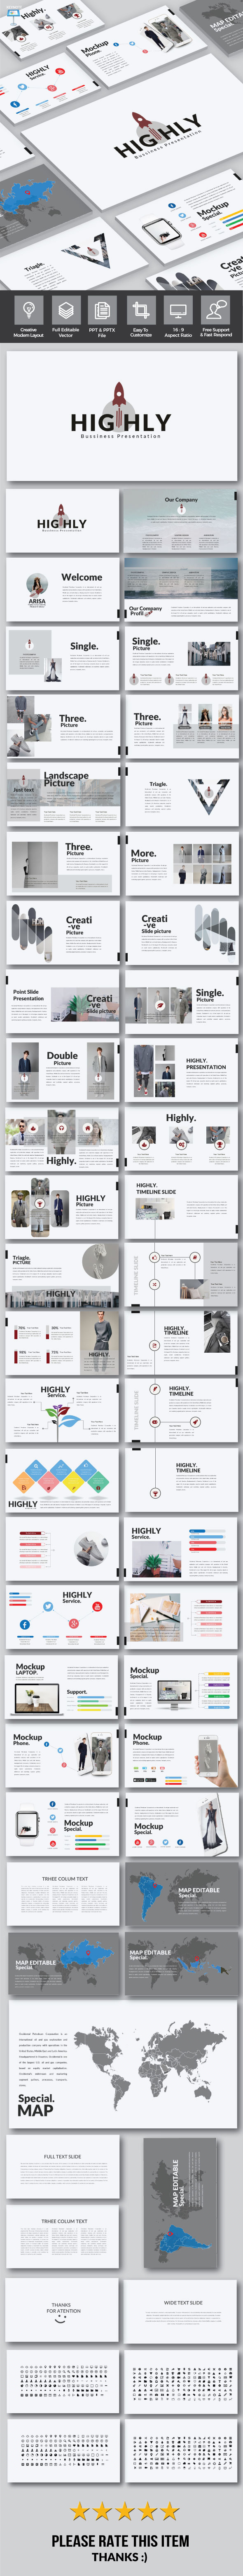 Highly - Keynote Powerpoint - Business Keynote Templates